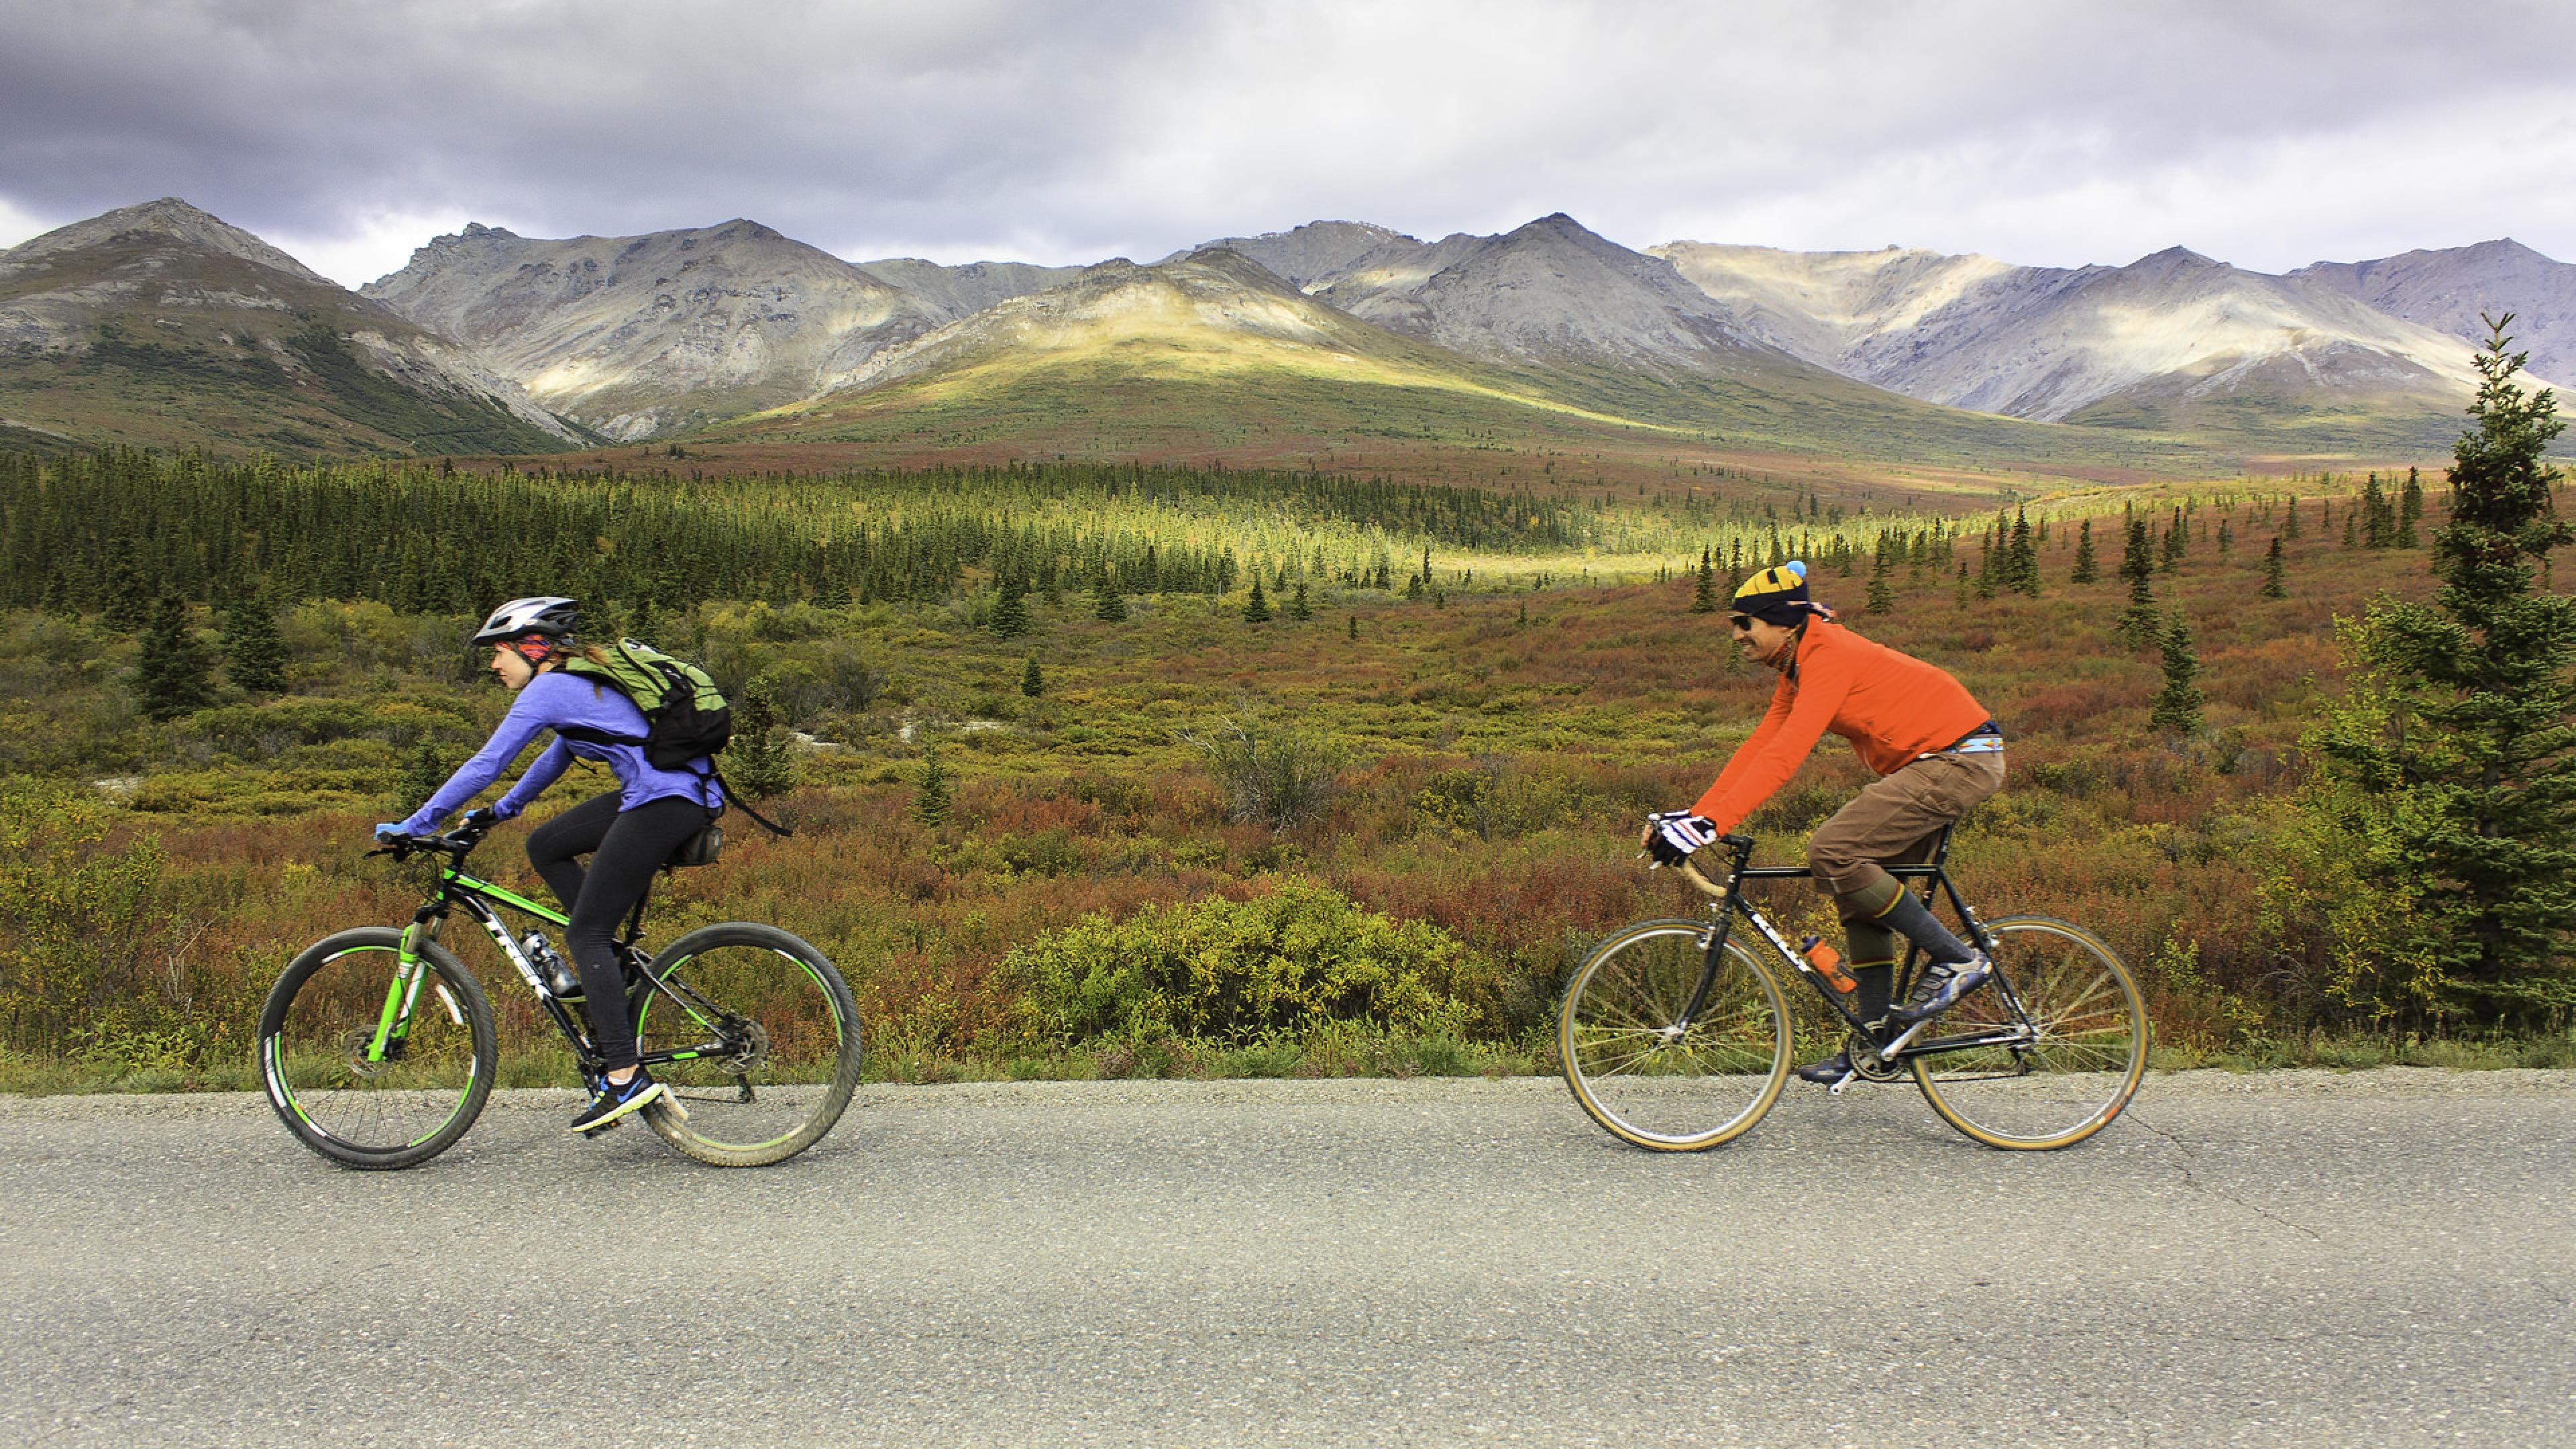 Two bikers ride along a paved road through Denali National Park & Preserve on a fall afternoon